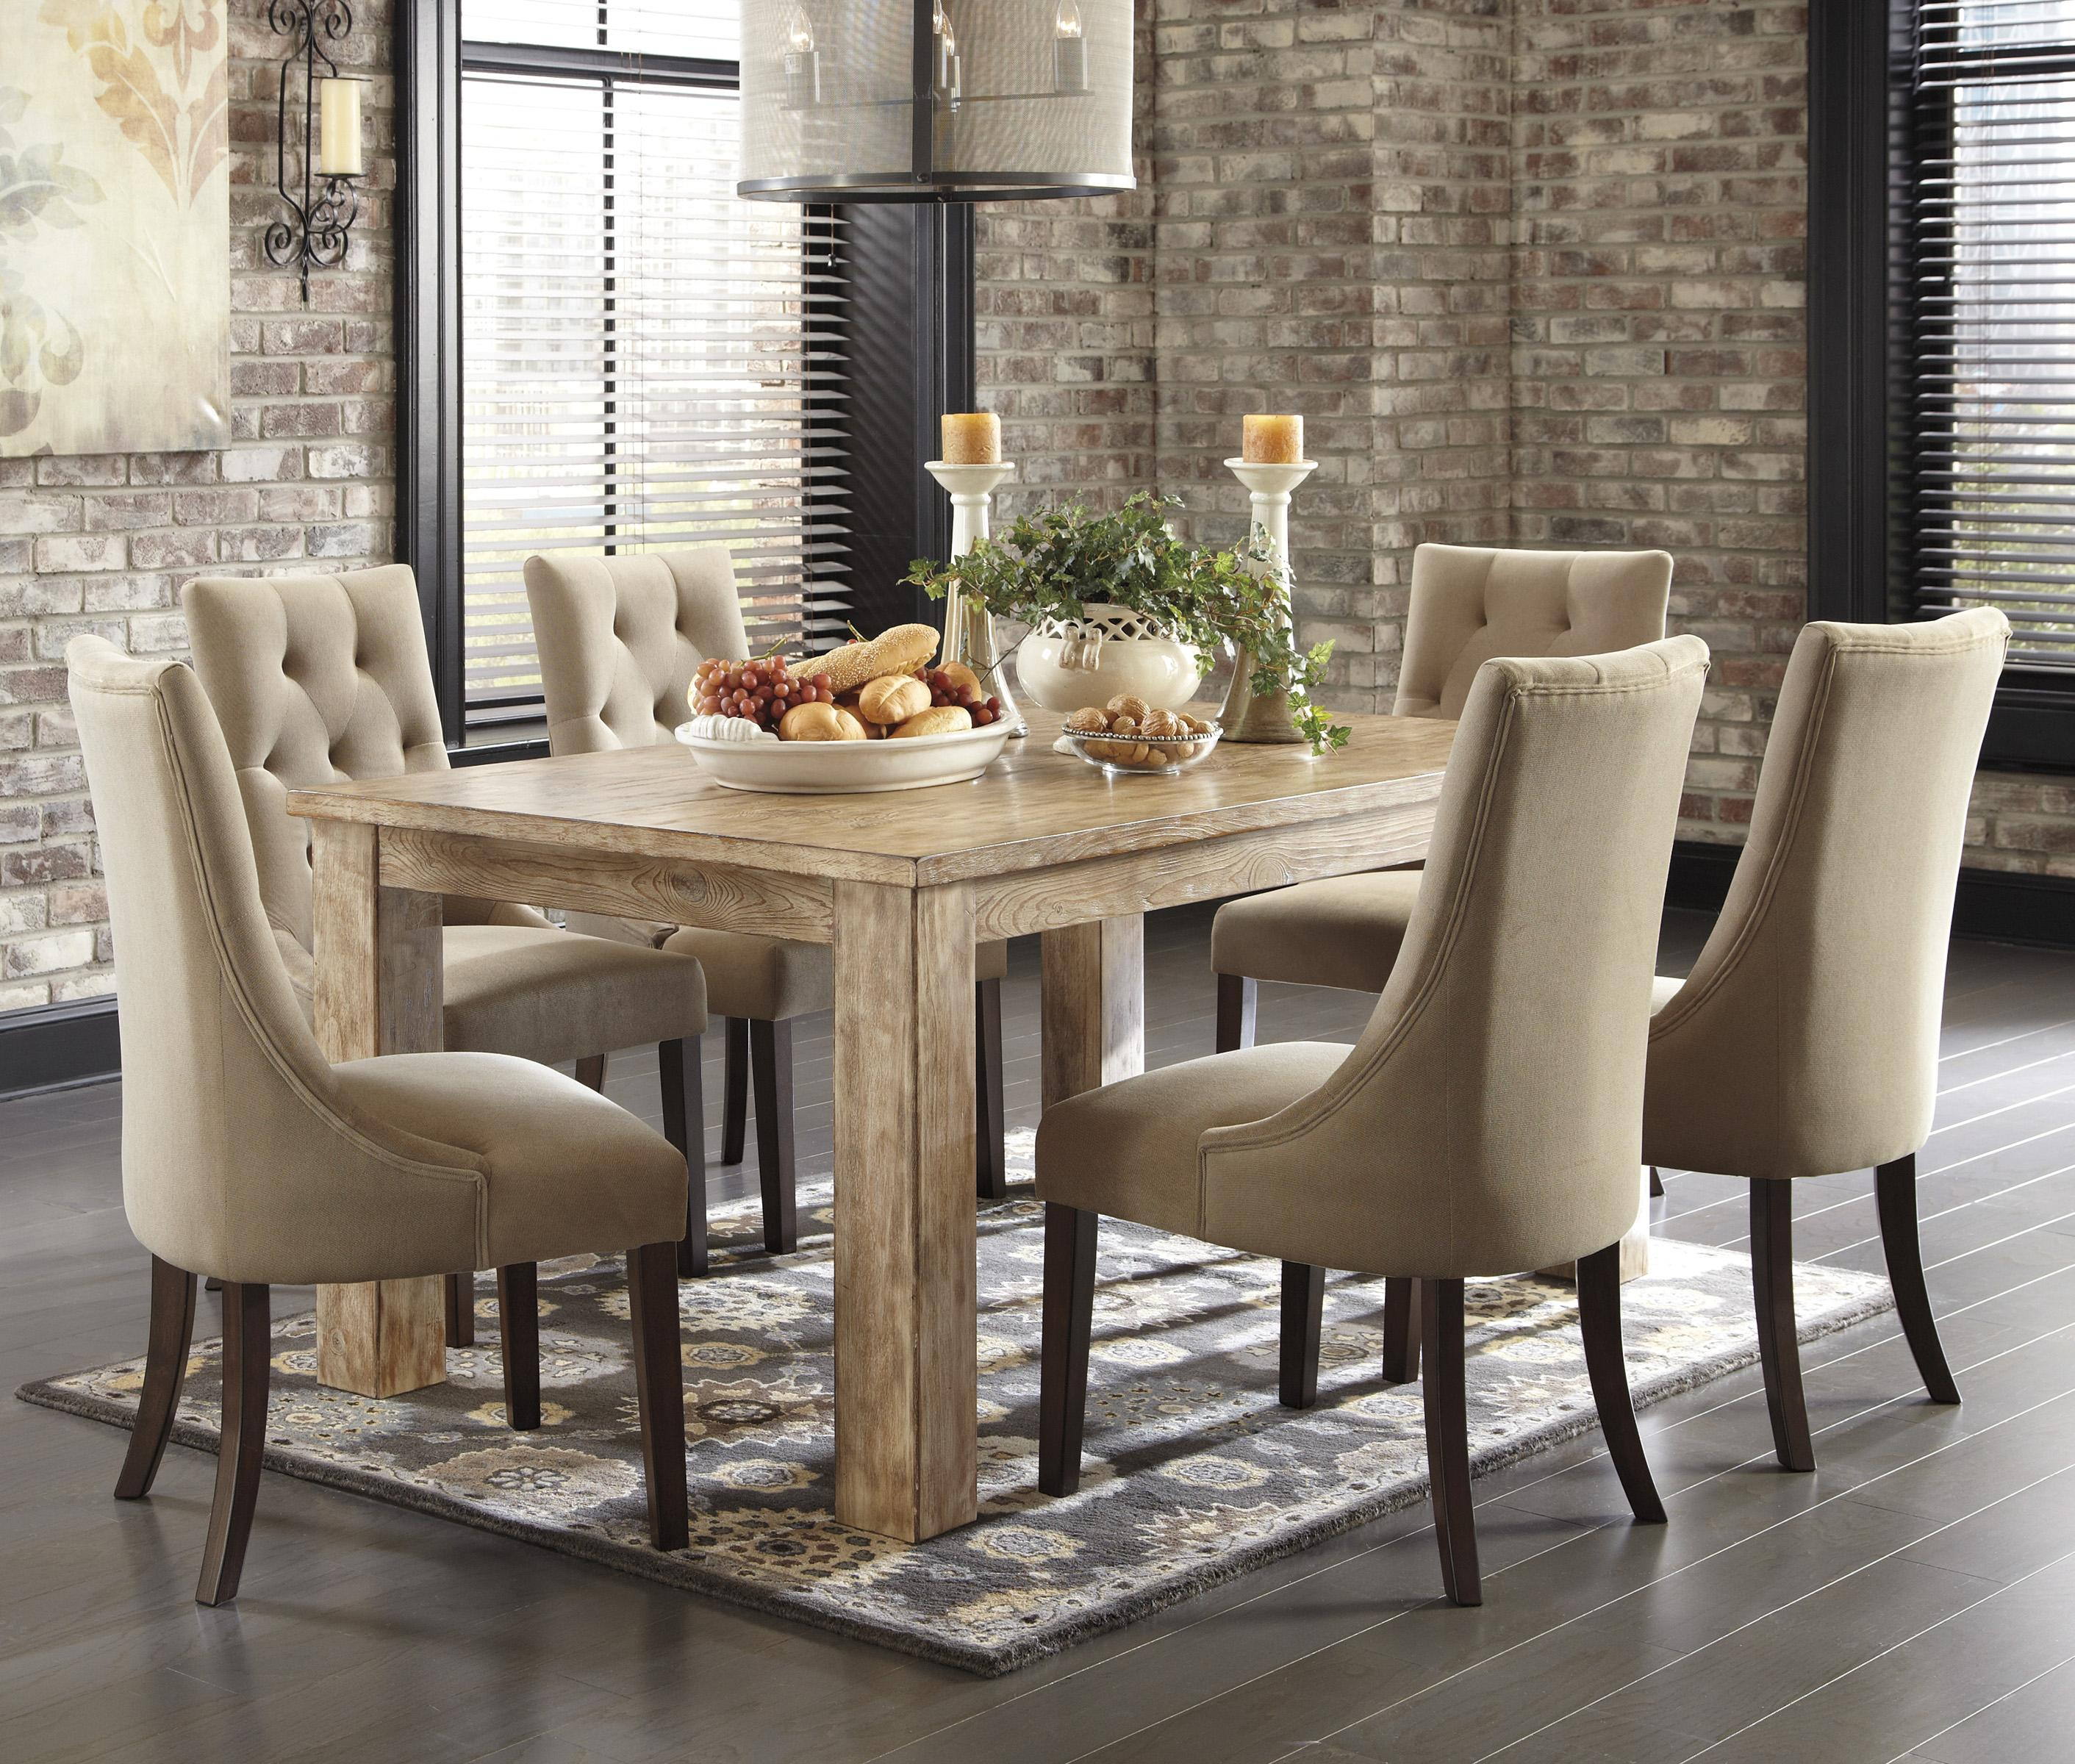 7 Piece Dining Set With Upholstered Side Chairs By Signature Design By Ashley Wolf And